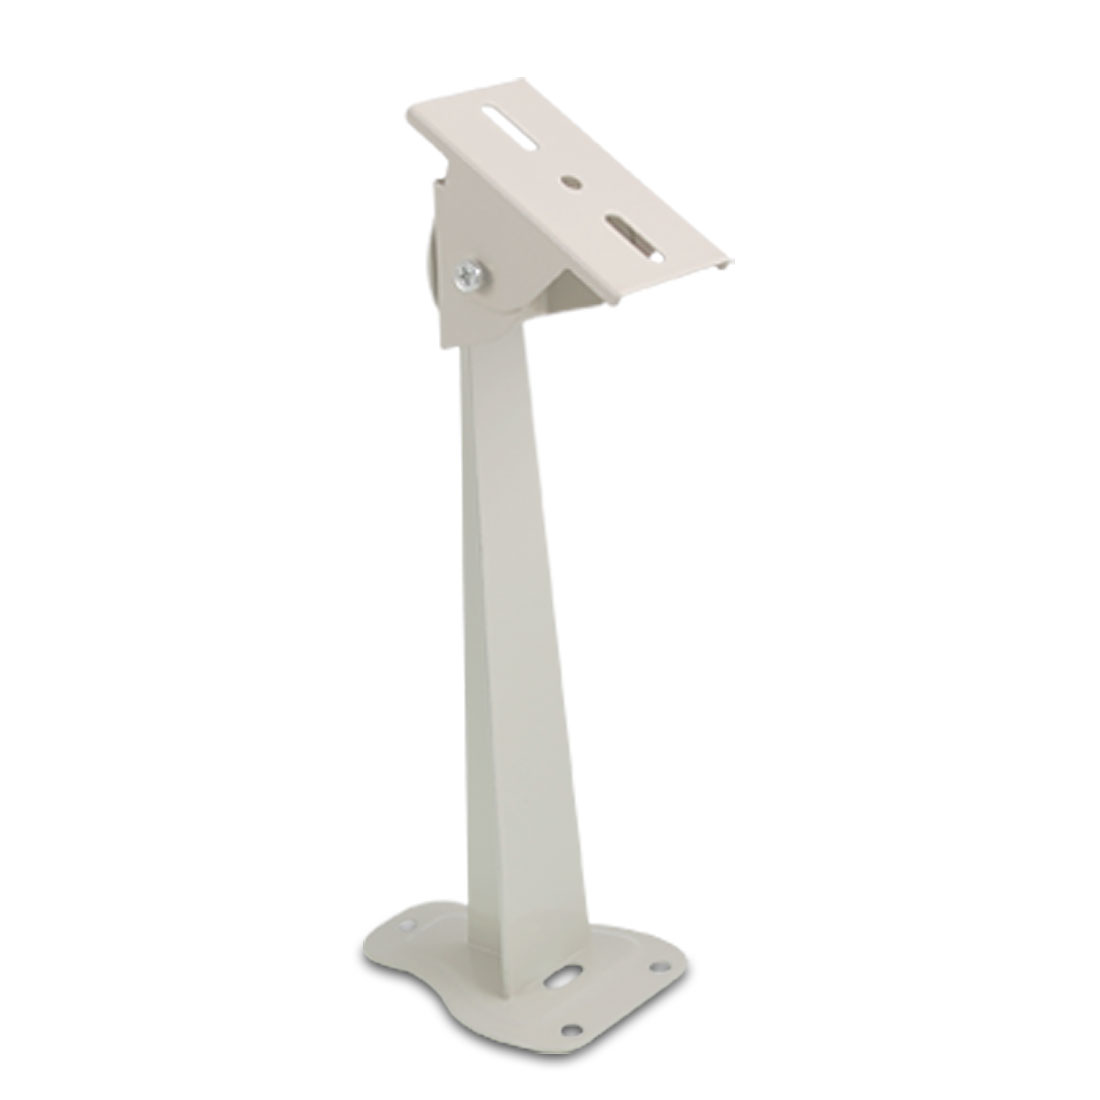 Metal Wall Mount Stand Bracket for CCTV Security Camera White